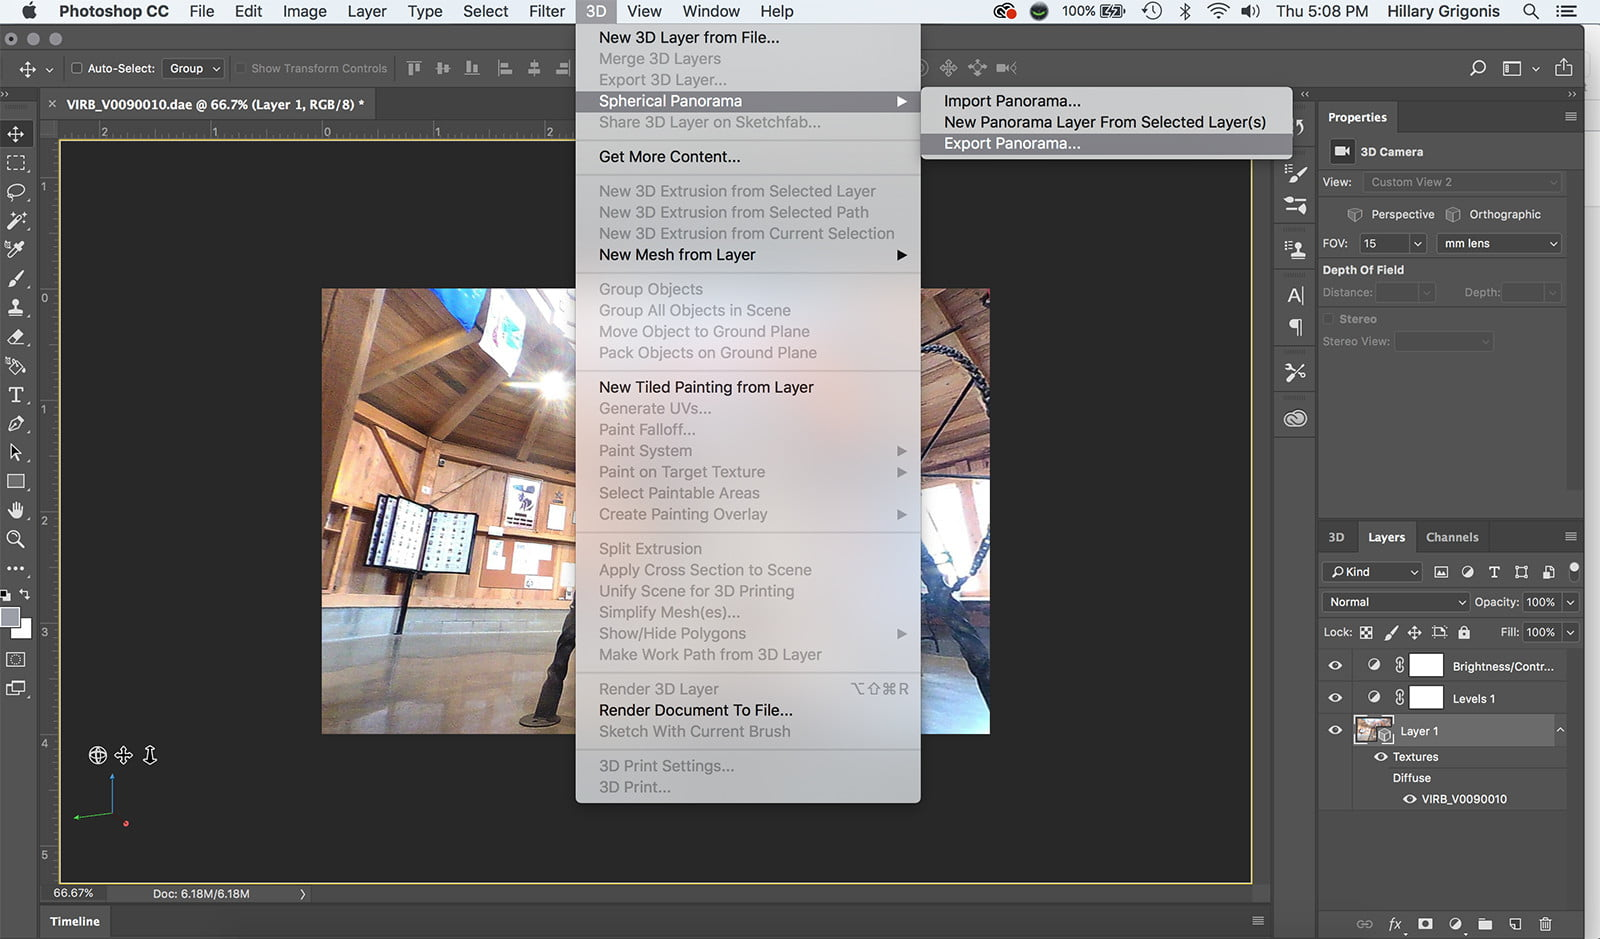 How To Edit 360 Photos In Photoshop In 6 Easy Steps Digital Trends